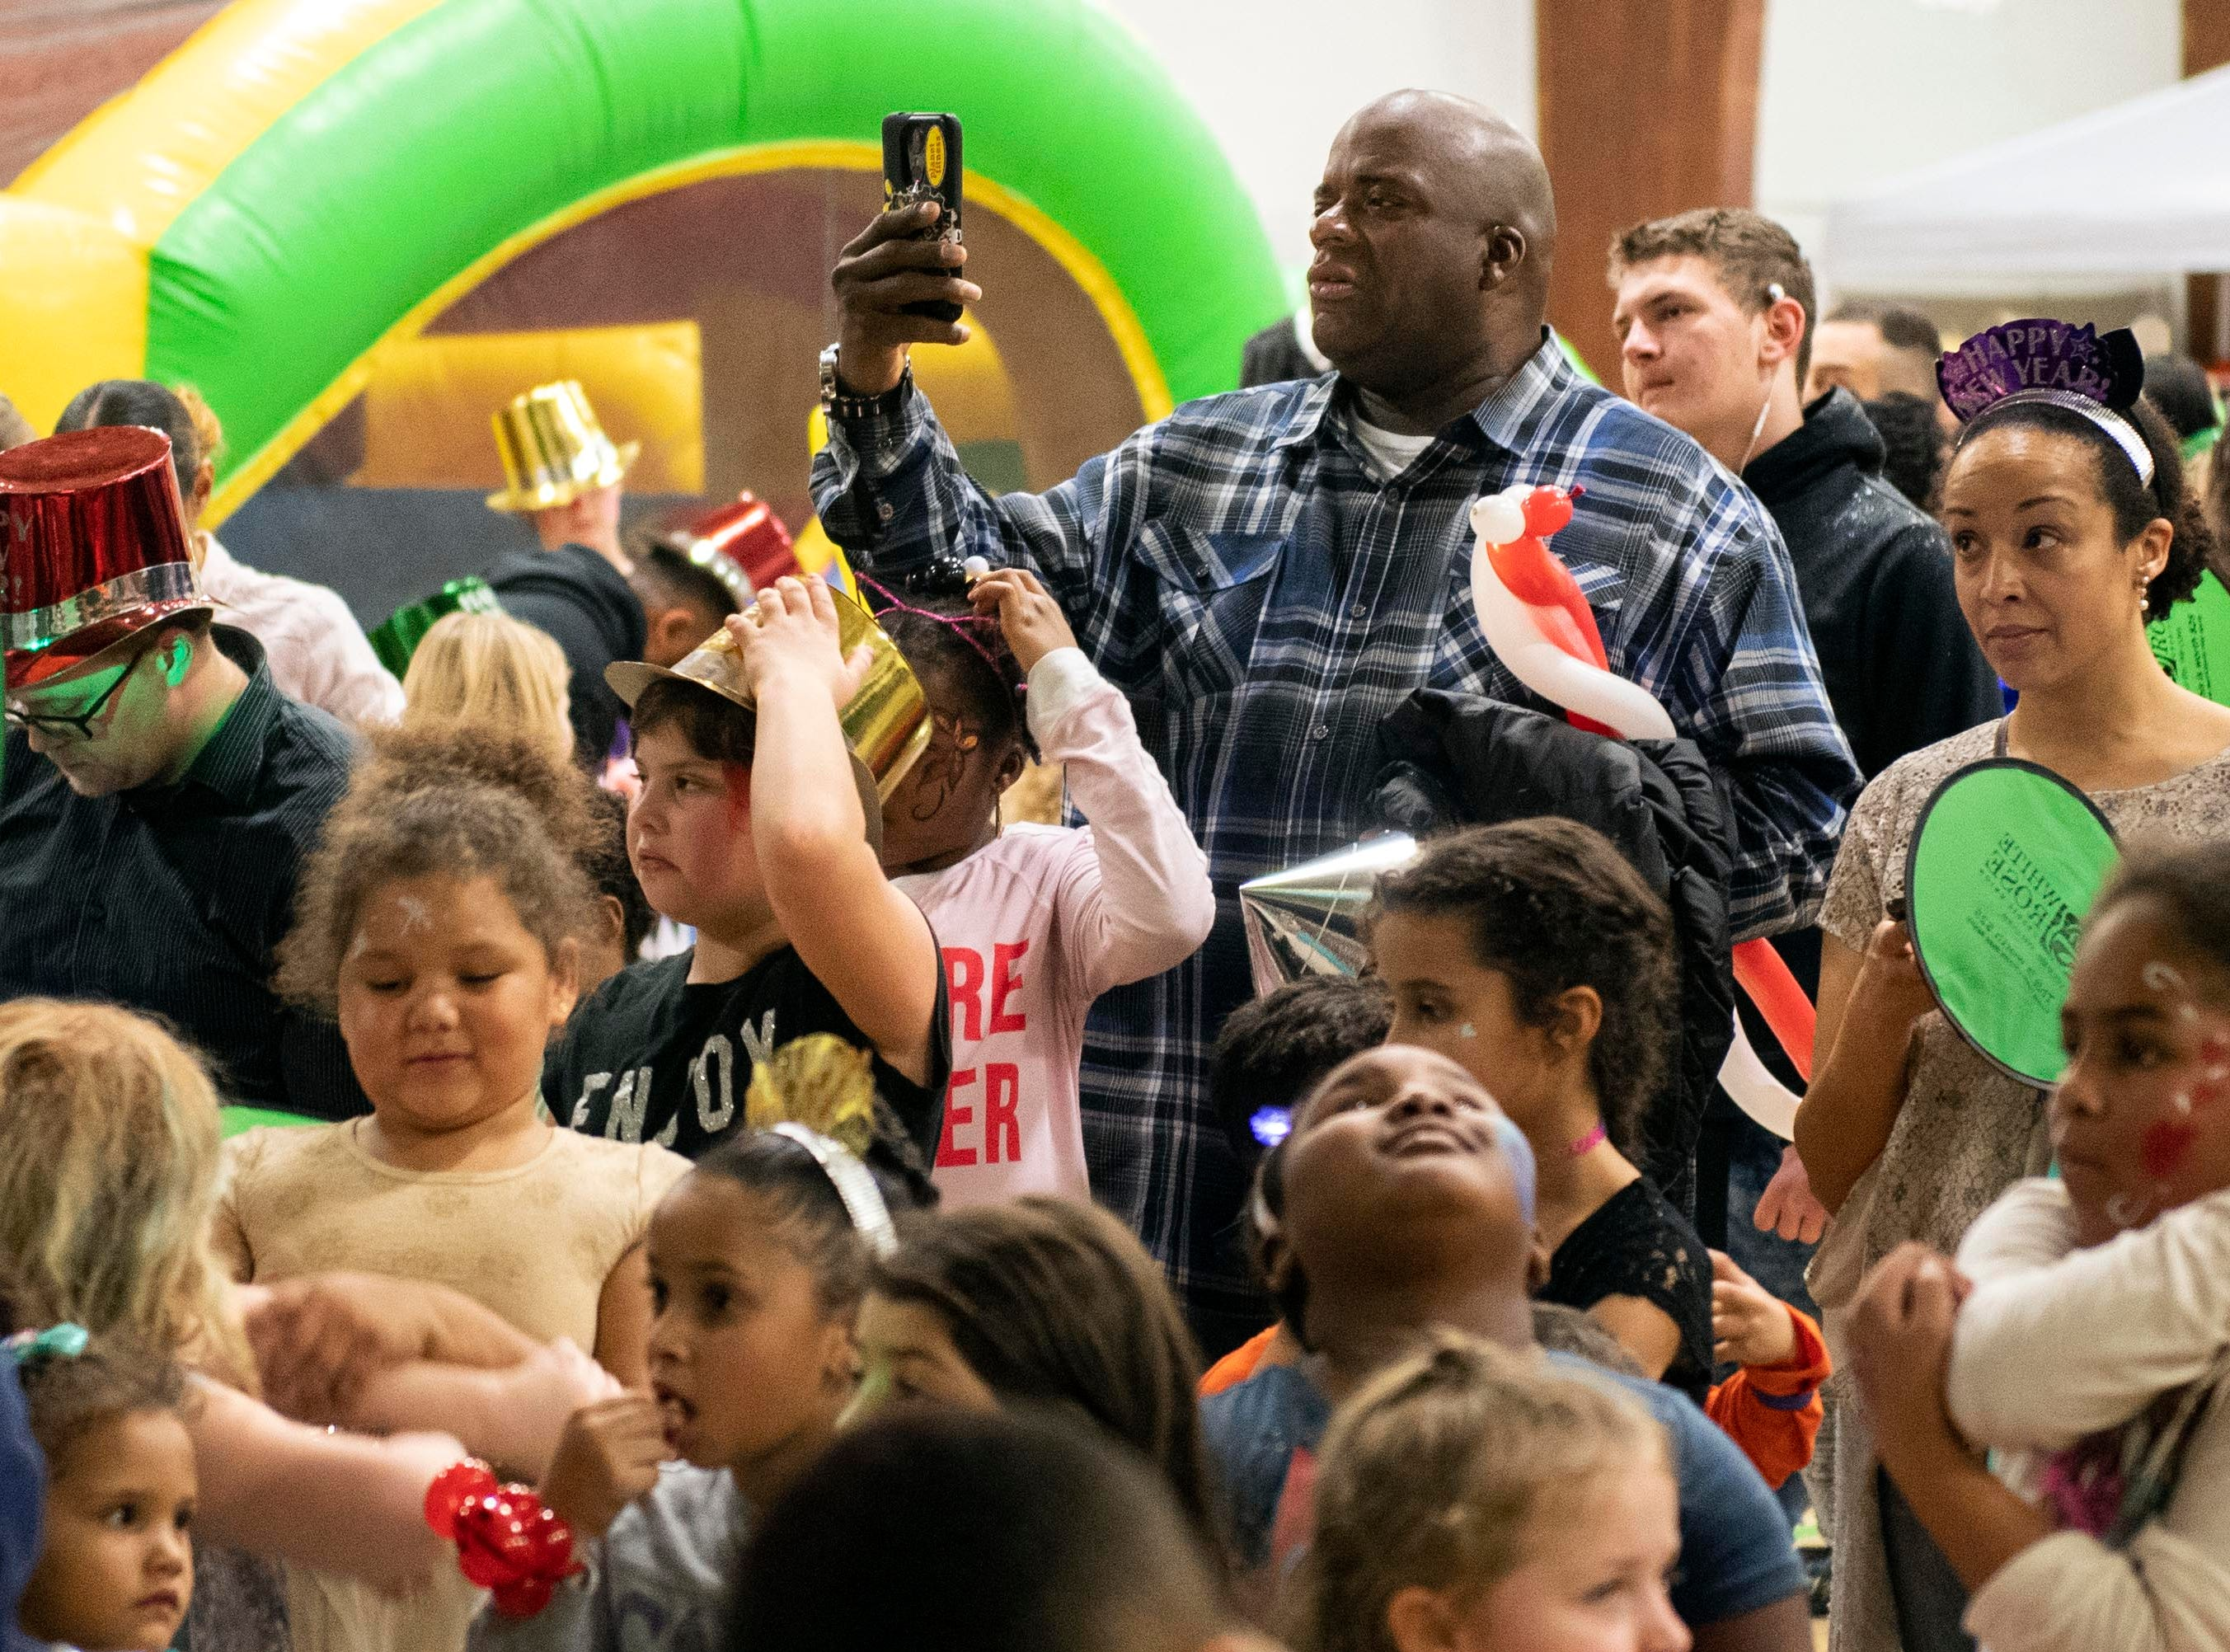 Parents watch on prior to the balloon drop during the Children's Countdown to 2019 event at Voni Grimes Gym, Monday, Dec. 31, 2018. Hundreds of kids rang in the new year early, along with getting their faces painted, dancing and bounce houses.